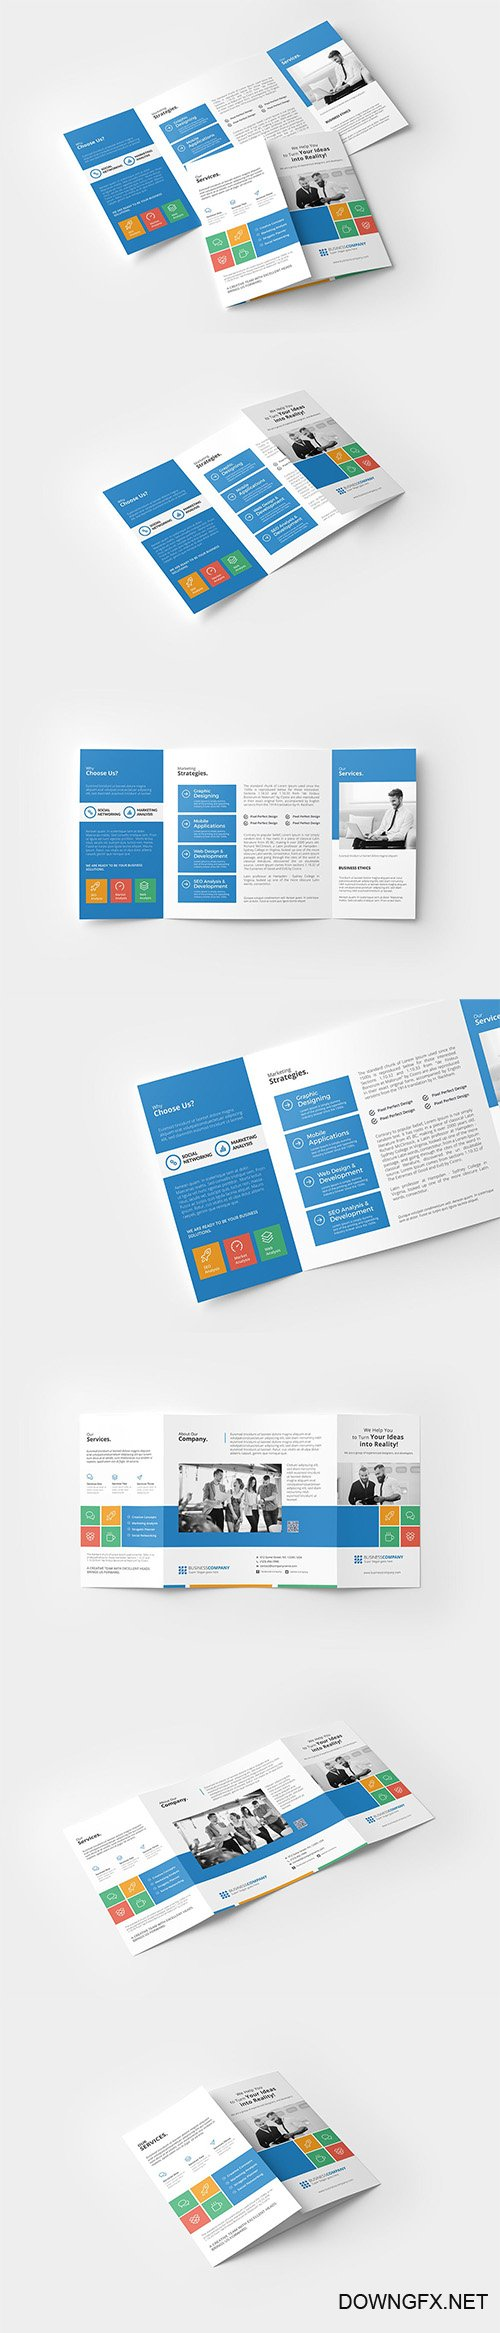 Square Getefold Brochure PSD